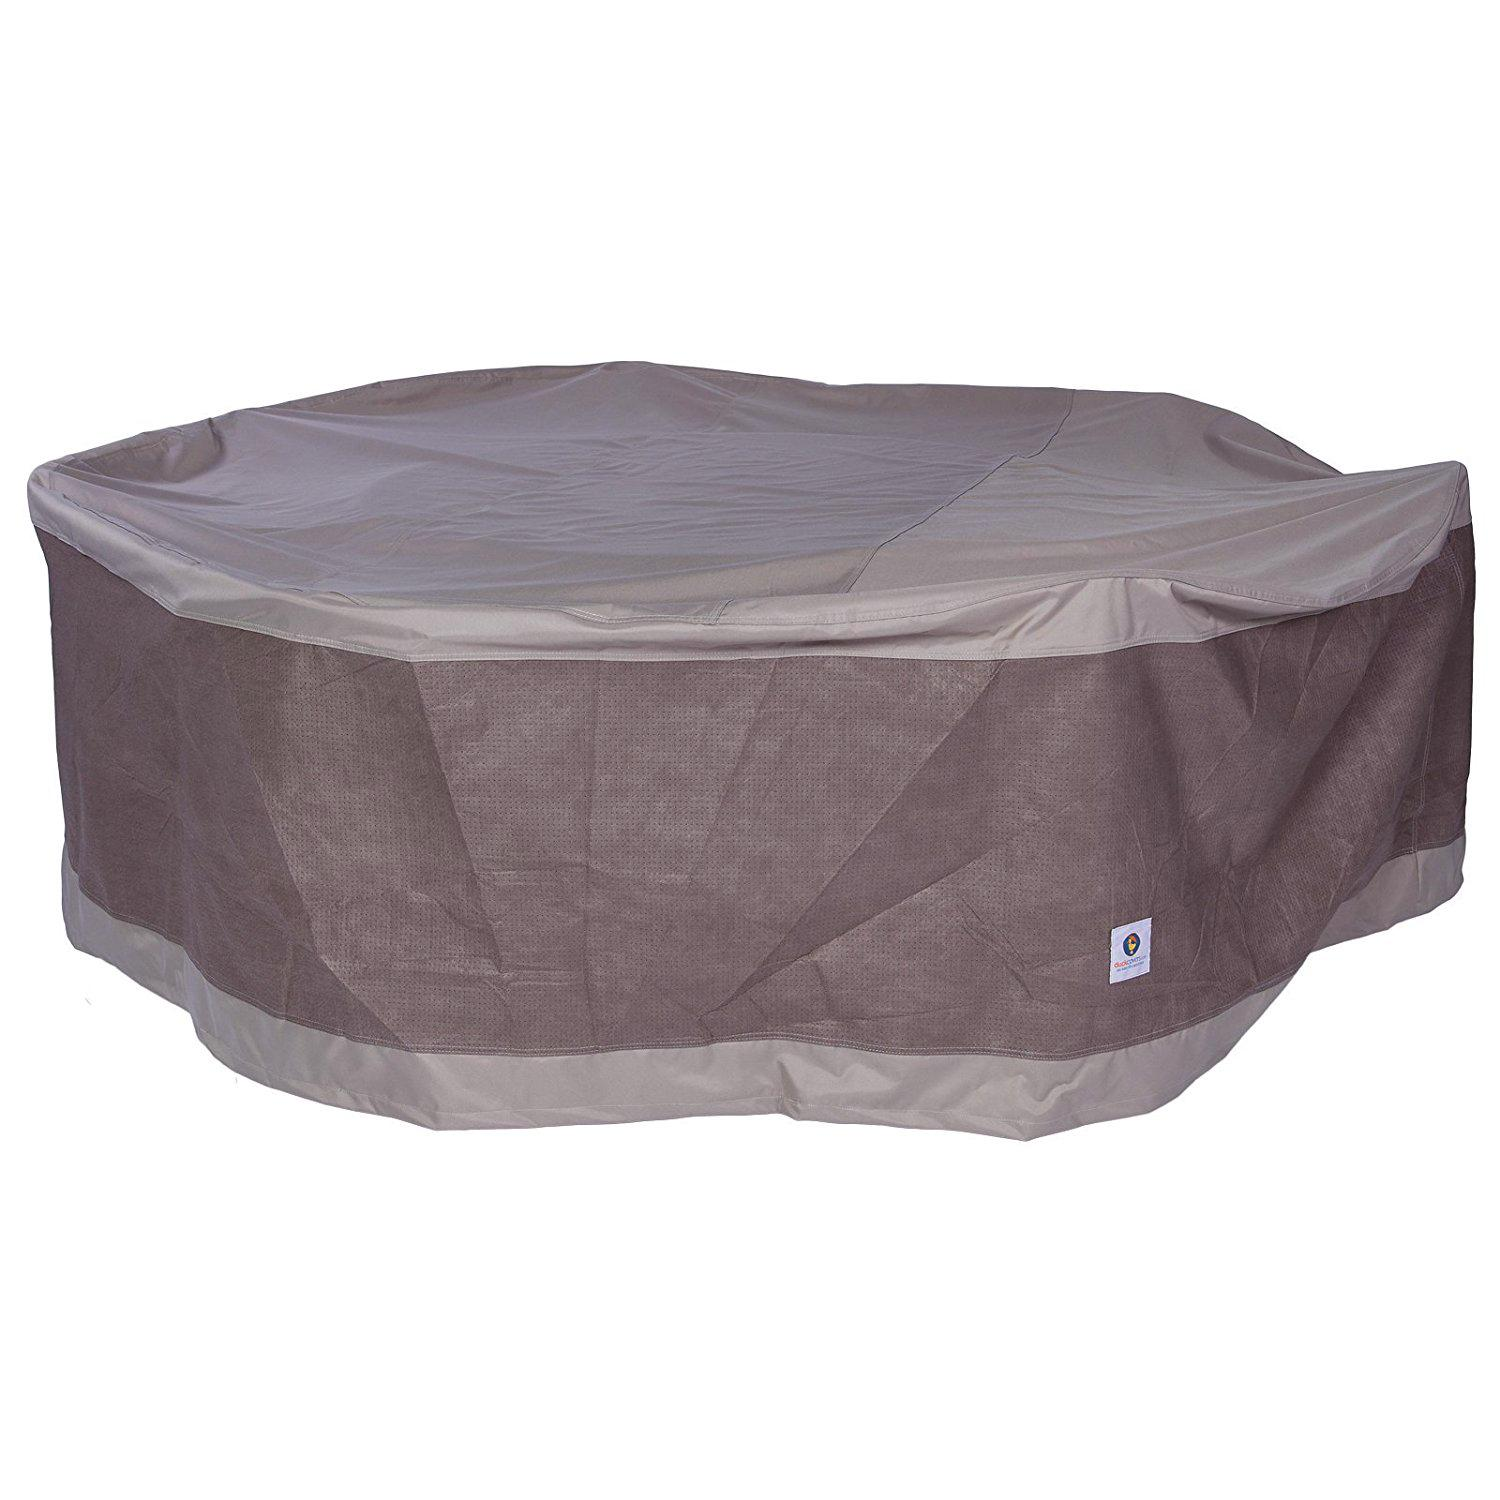 Amazon Duck Covers Elegant Round Fire Pit Cover 36 Inch